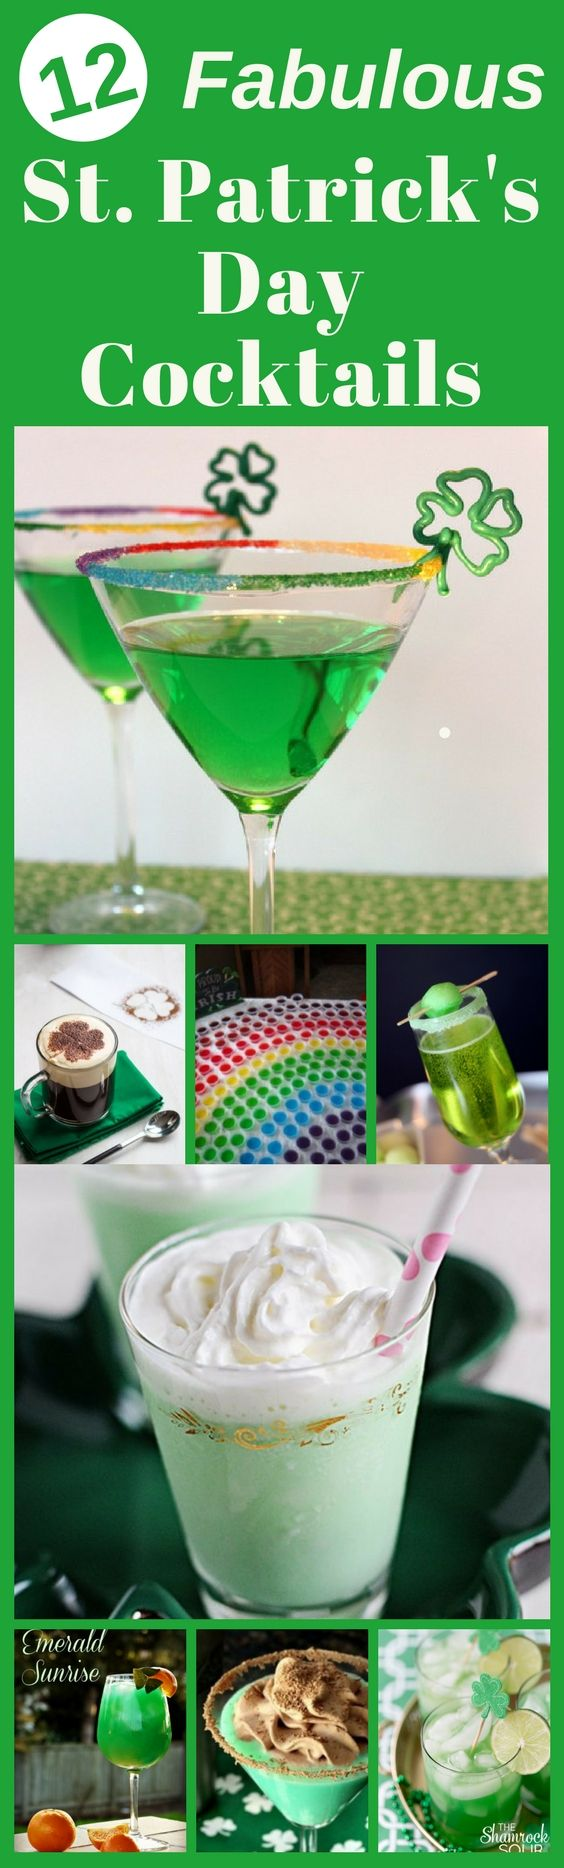 St. Patrick's Day Drinks - Looking for fun St. Patty's cocktails?  Impress your party guests with a signature Irish cocktail!  What better way for adults to celebrate than with green alcohol? #stpatricksdaycocktails #stpatricksday via @camdenmcl